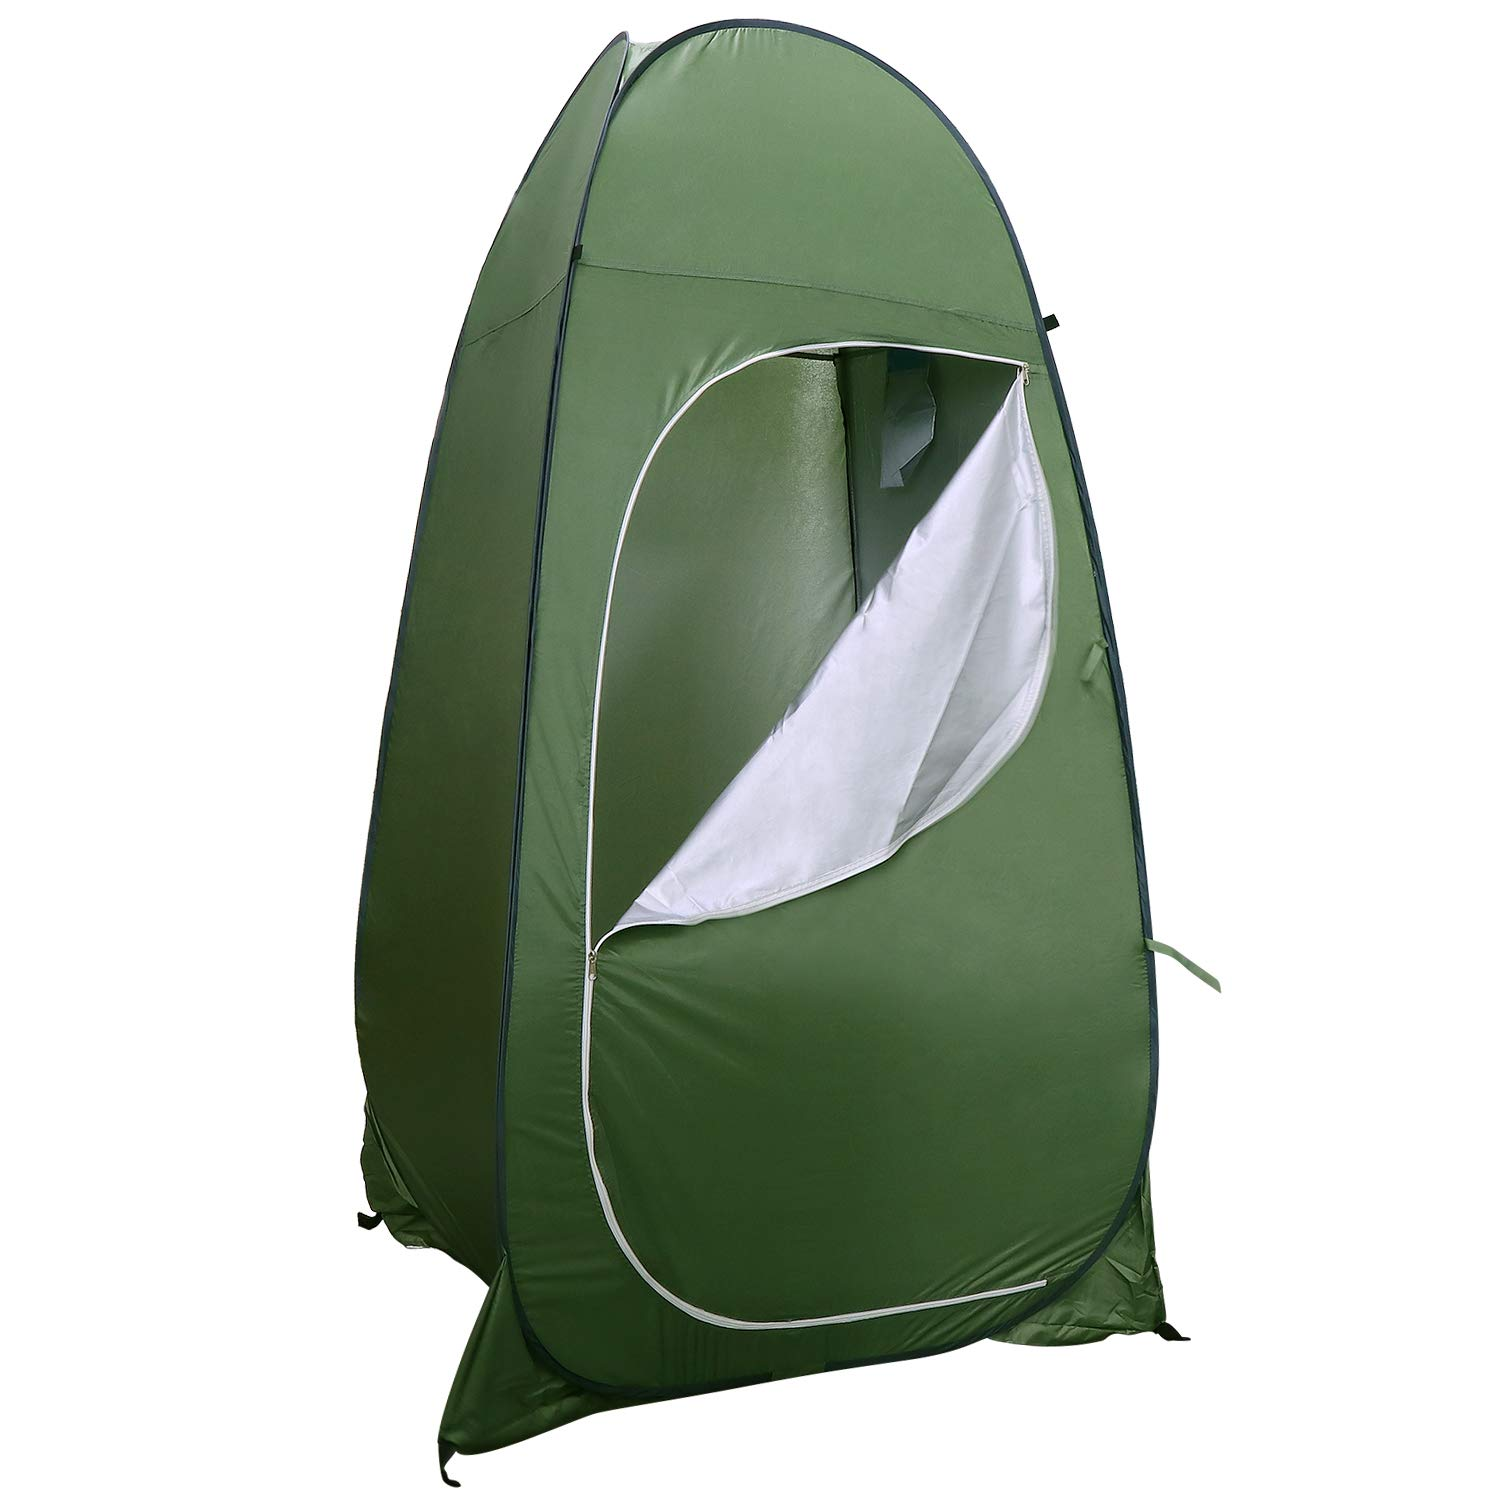 KEESIN Pop Up Camping Toilet Tent,Shower Privacy Room Tent for Outdoor Changing Dressing Bathing